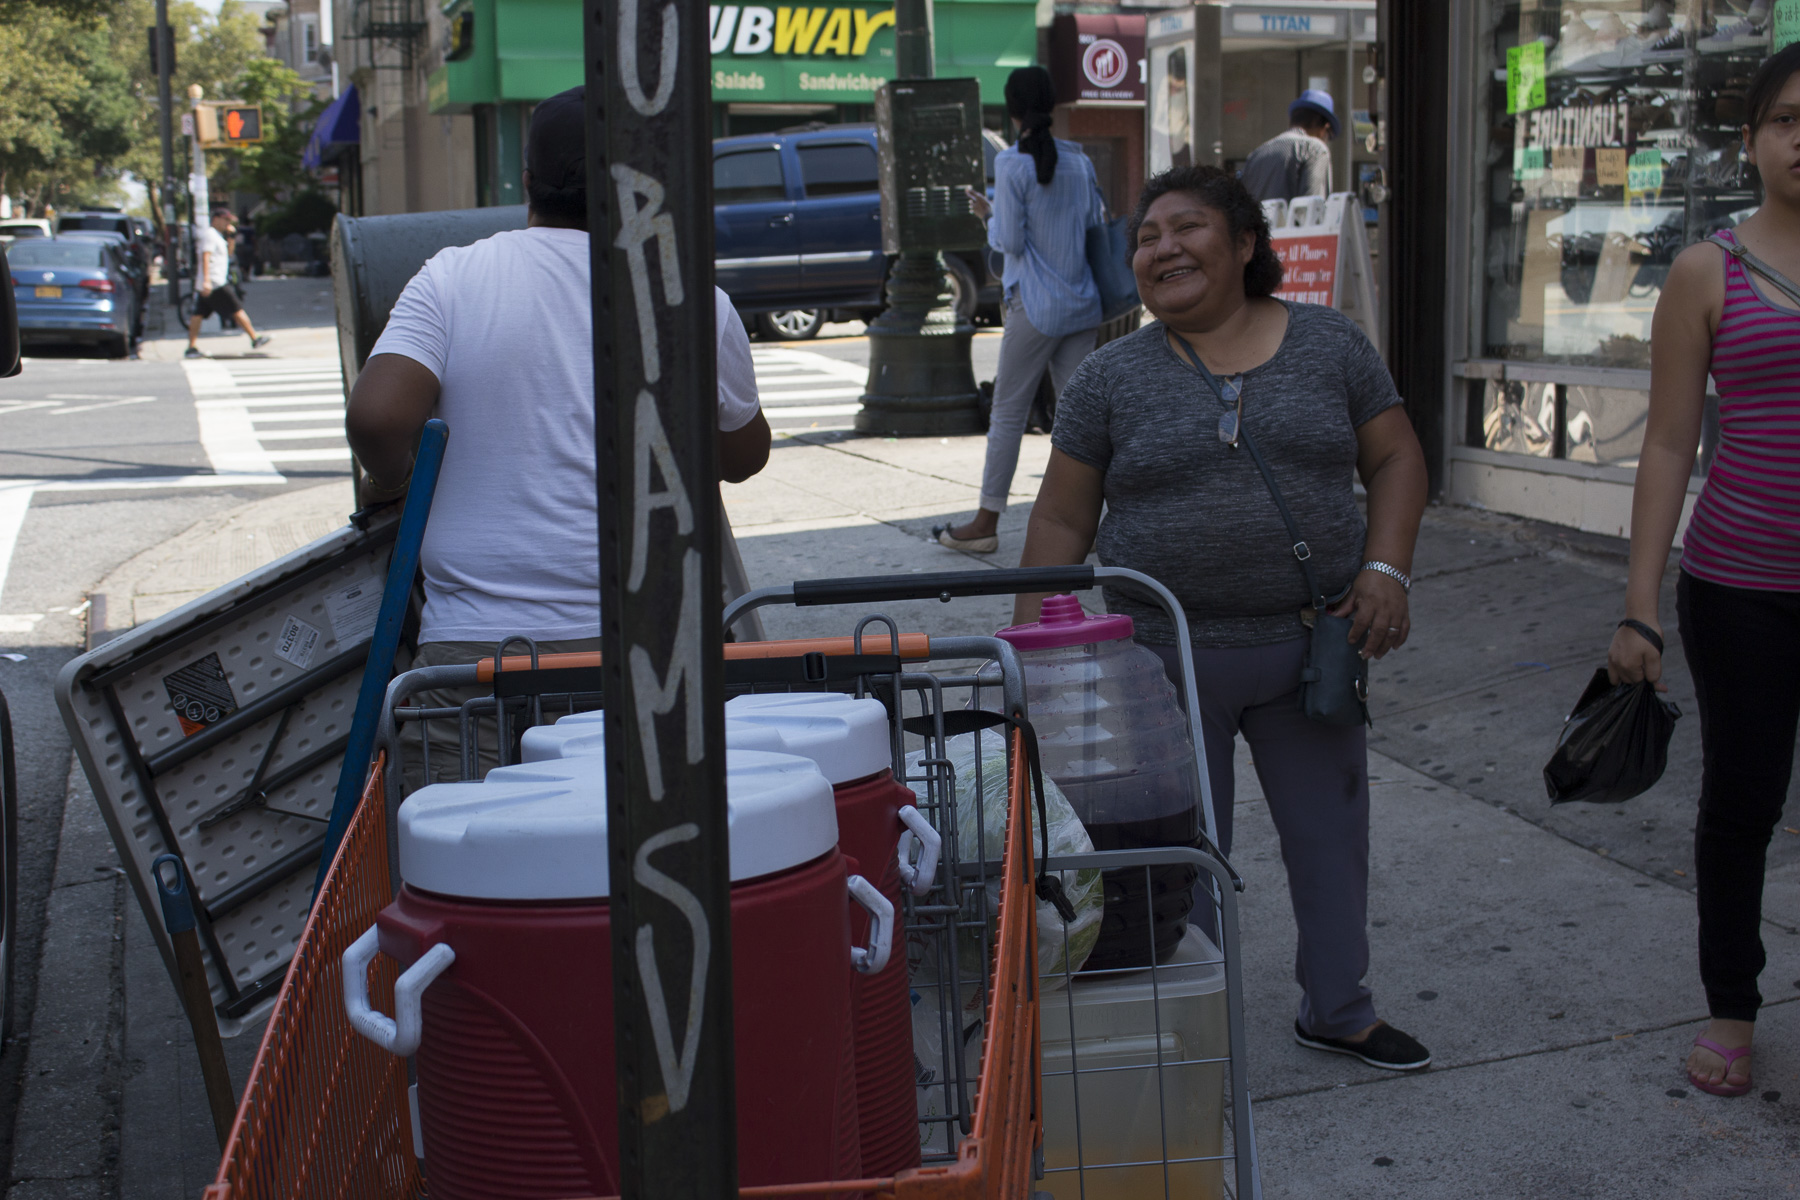 Teodosia works to support her son and his daughters. Her husband went back to Mexico and is there along with her parents. You can see that it is the love that Teodosia has for her family that drives her. August 22nd, 2017 Sunset Park, Brooklyn.